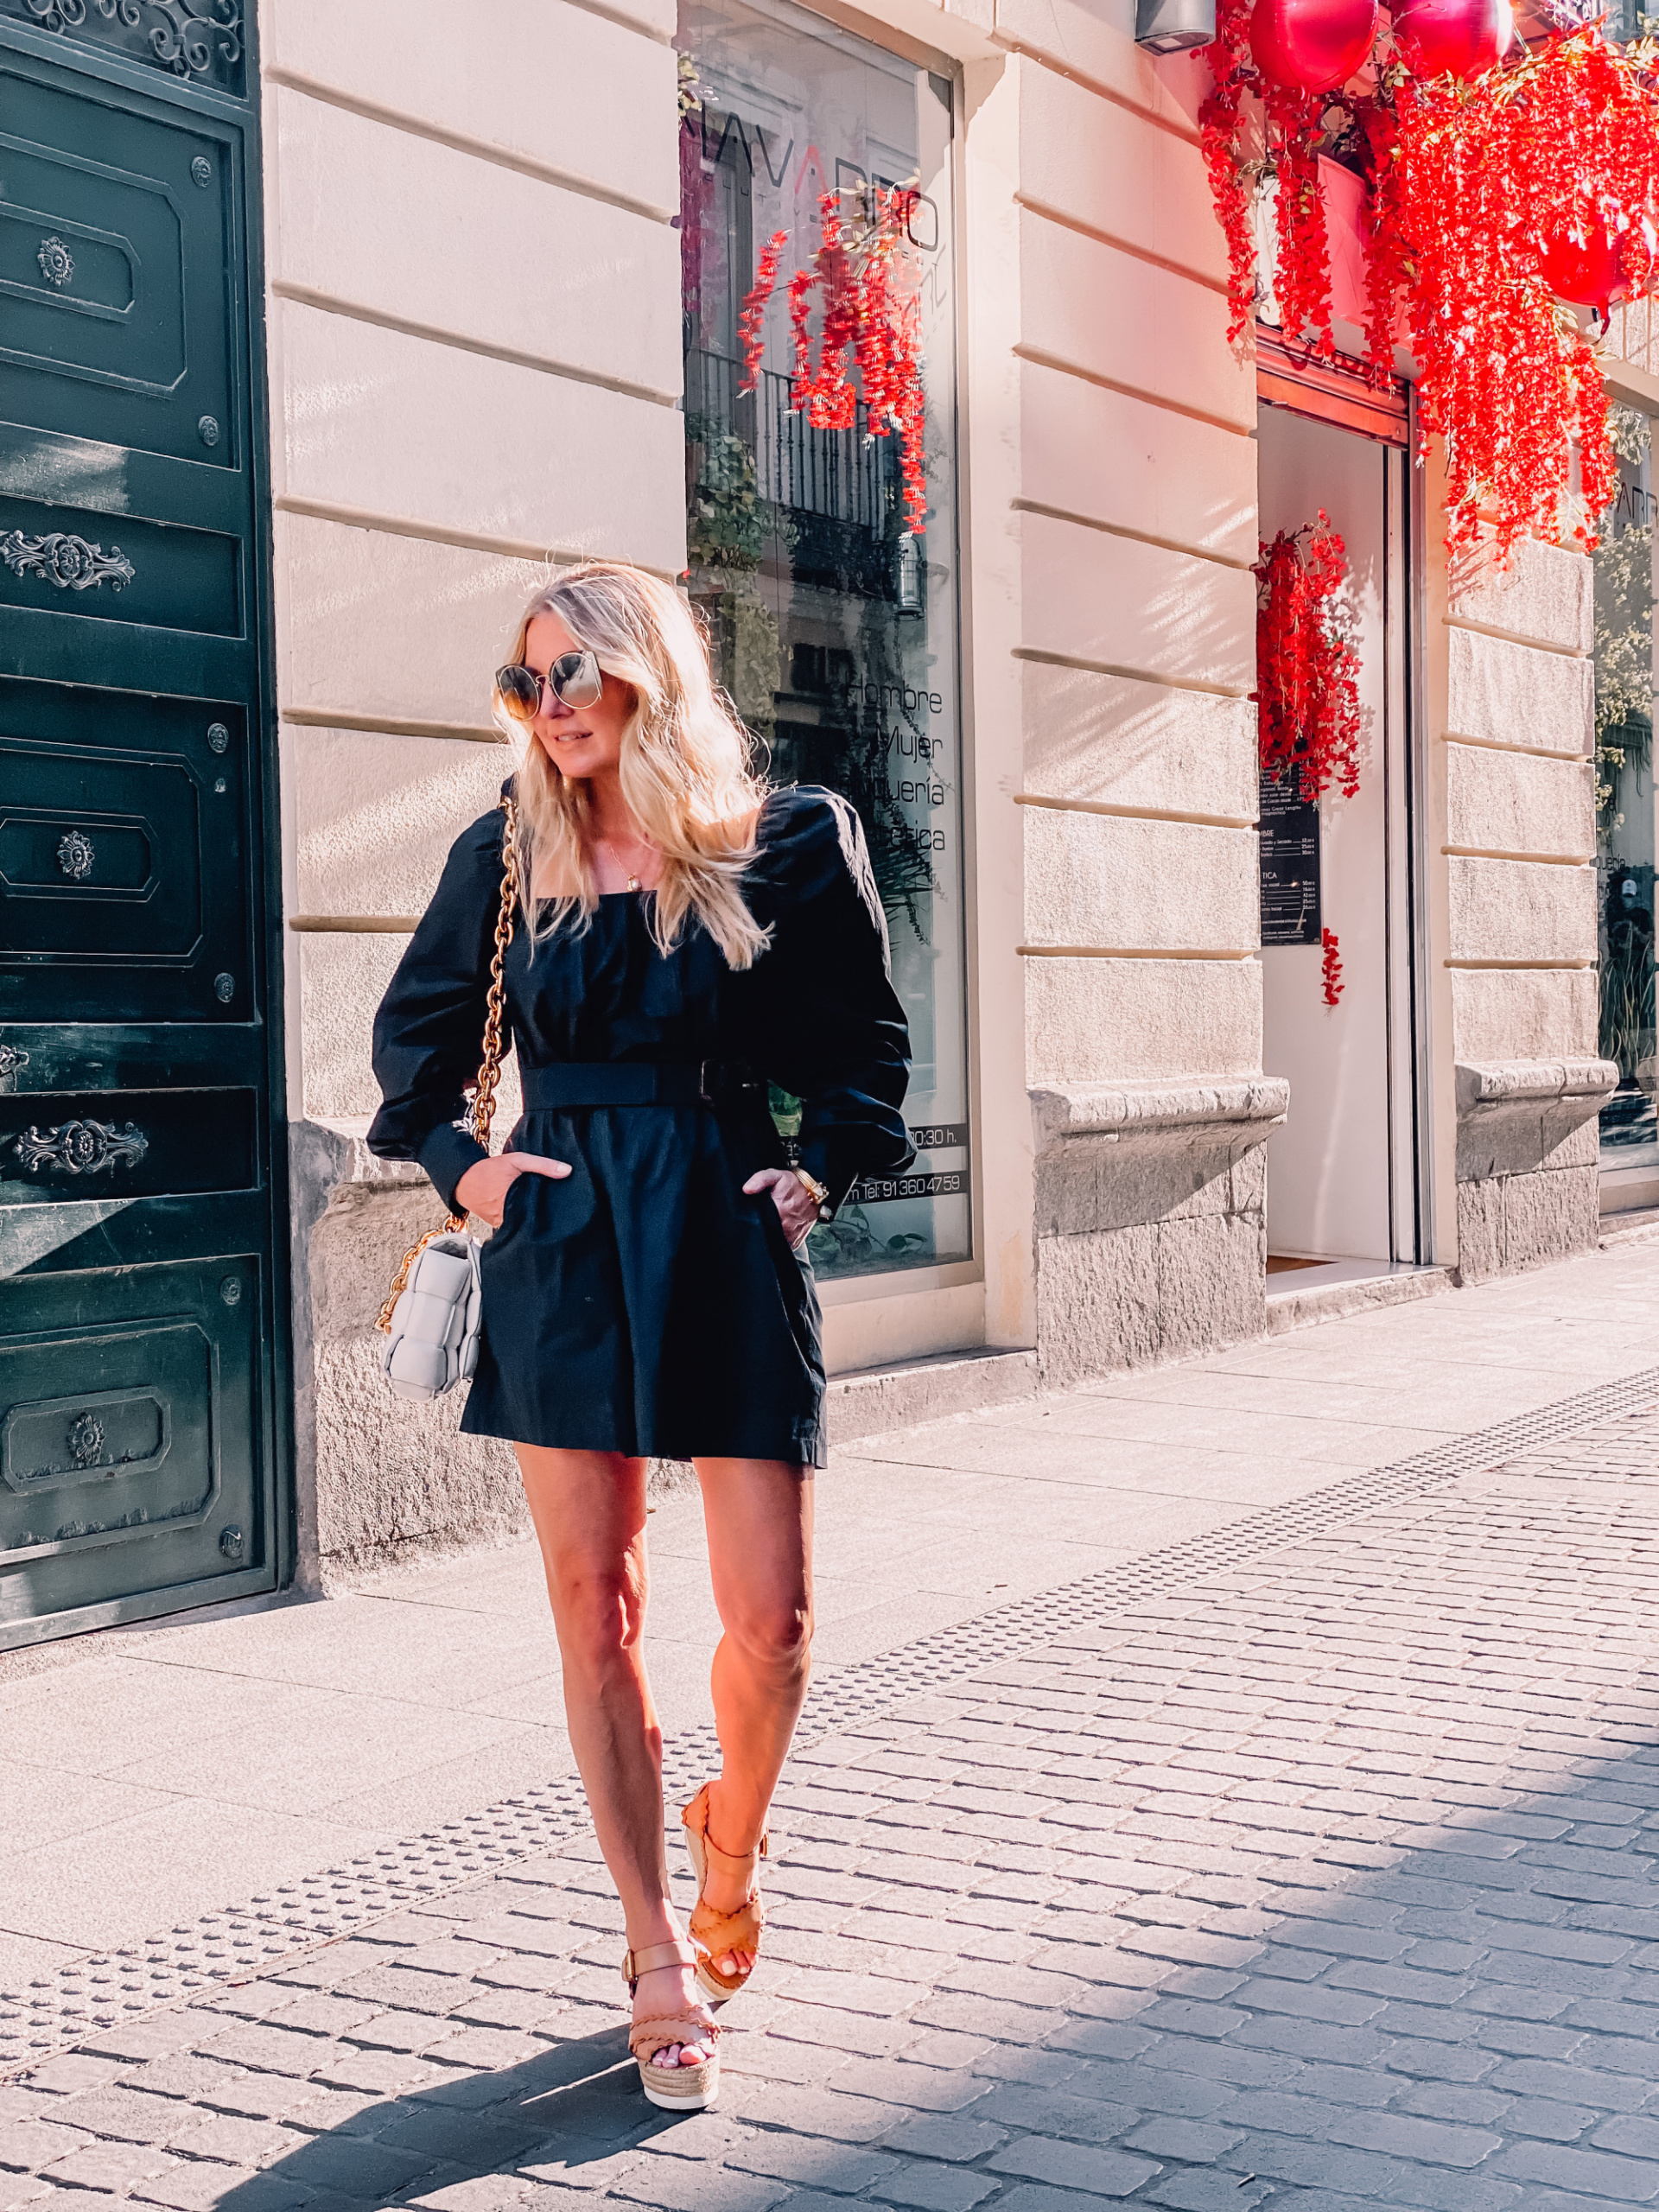 what to wear in spain, how to dress in spain, madrid, how to dress in madrid, what to wear in madrid, how to pack for a trip to spain, trip to spain, packing for spain, erin busbee, style of song black dress, see by chloe wedges, salvatore ferragamo sunglasses, bottega veneta chain cassette bag